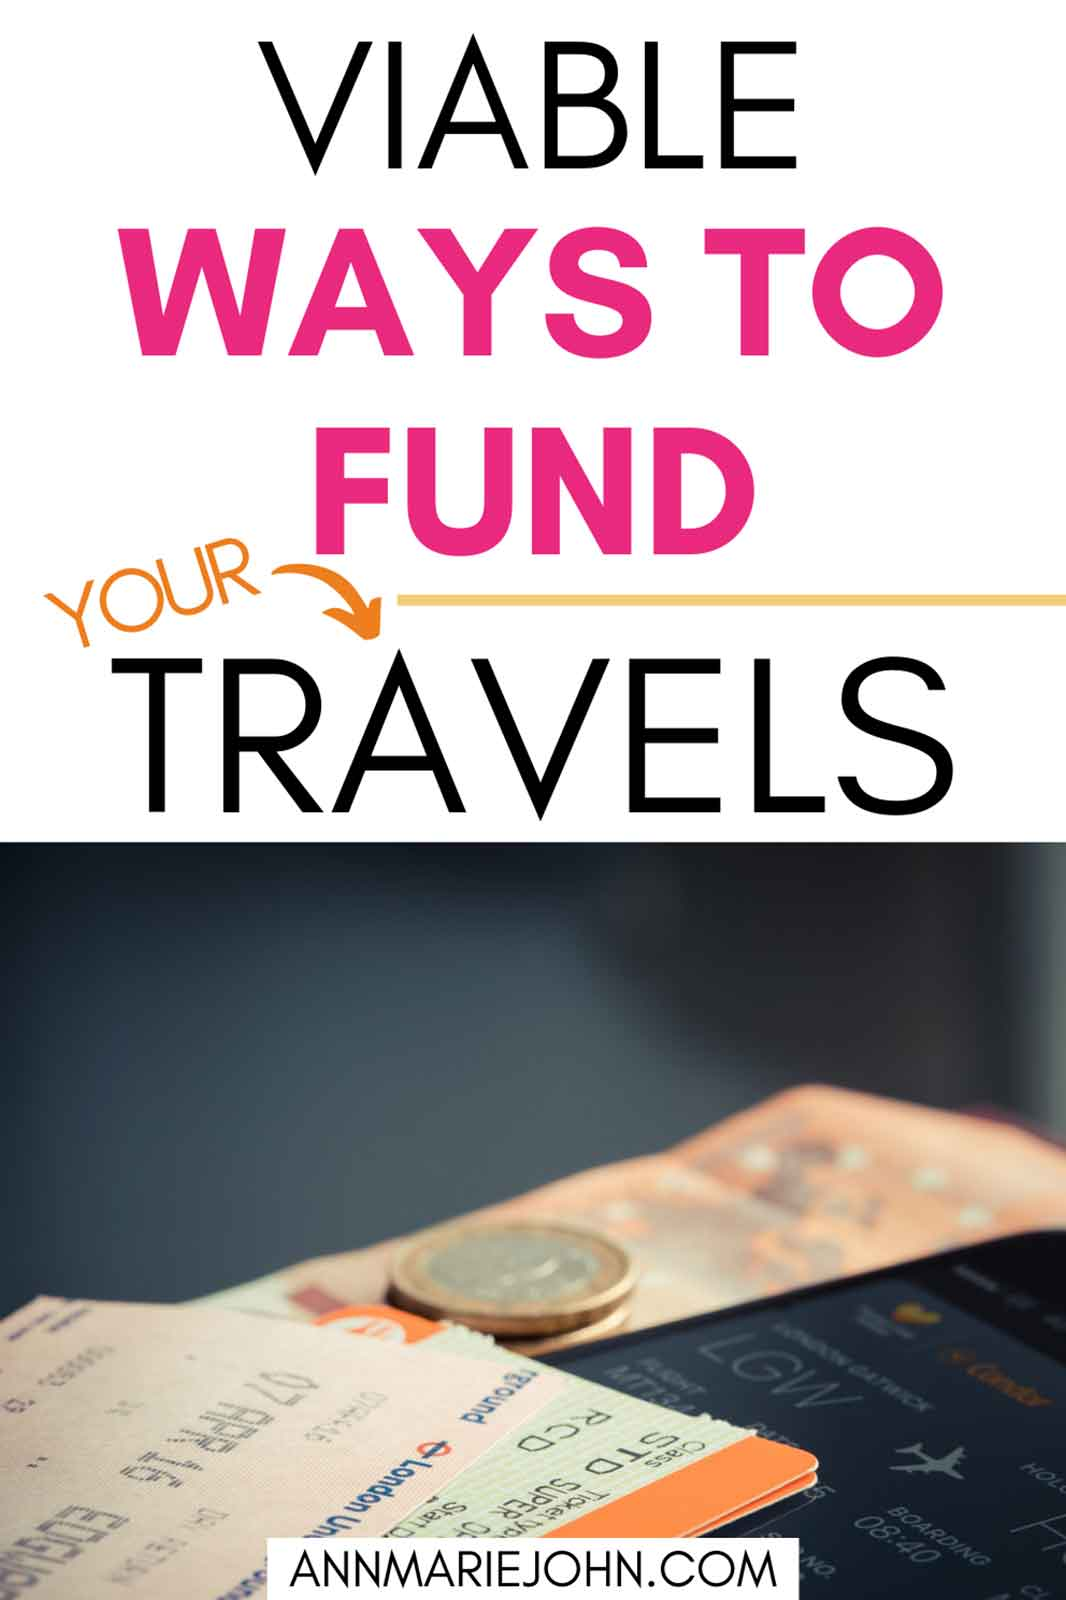 Viable Ways to Fund Your Travels